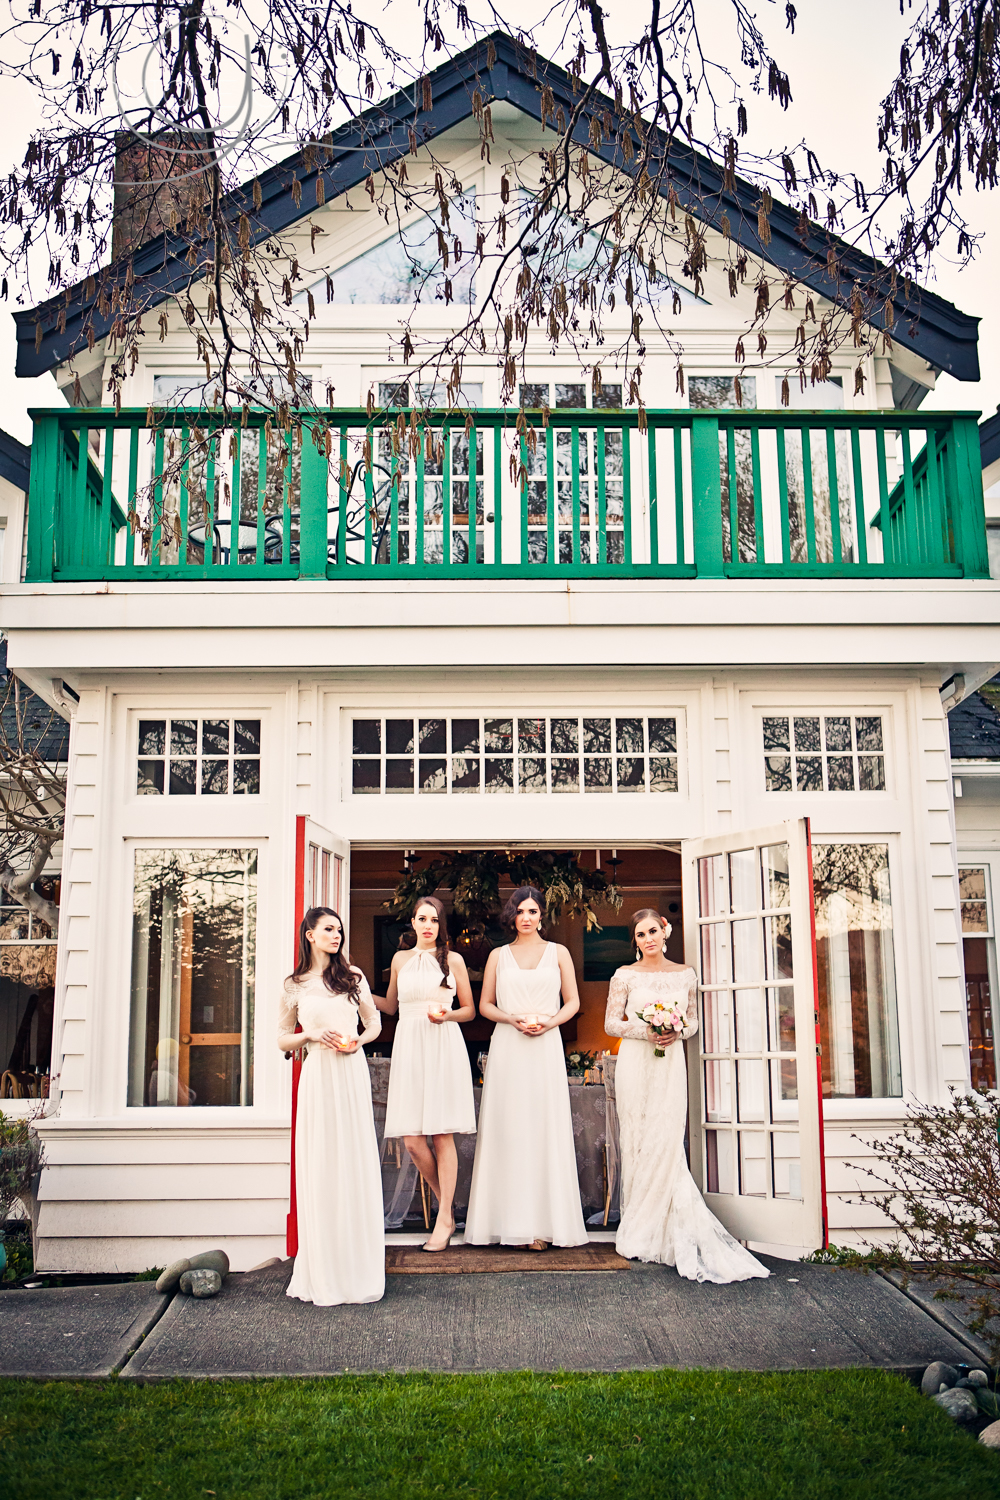 Bridal party all in white